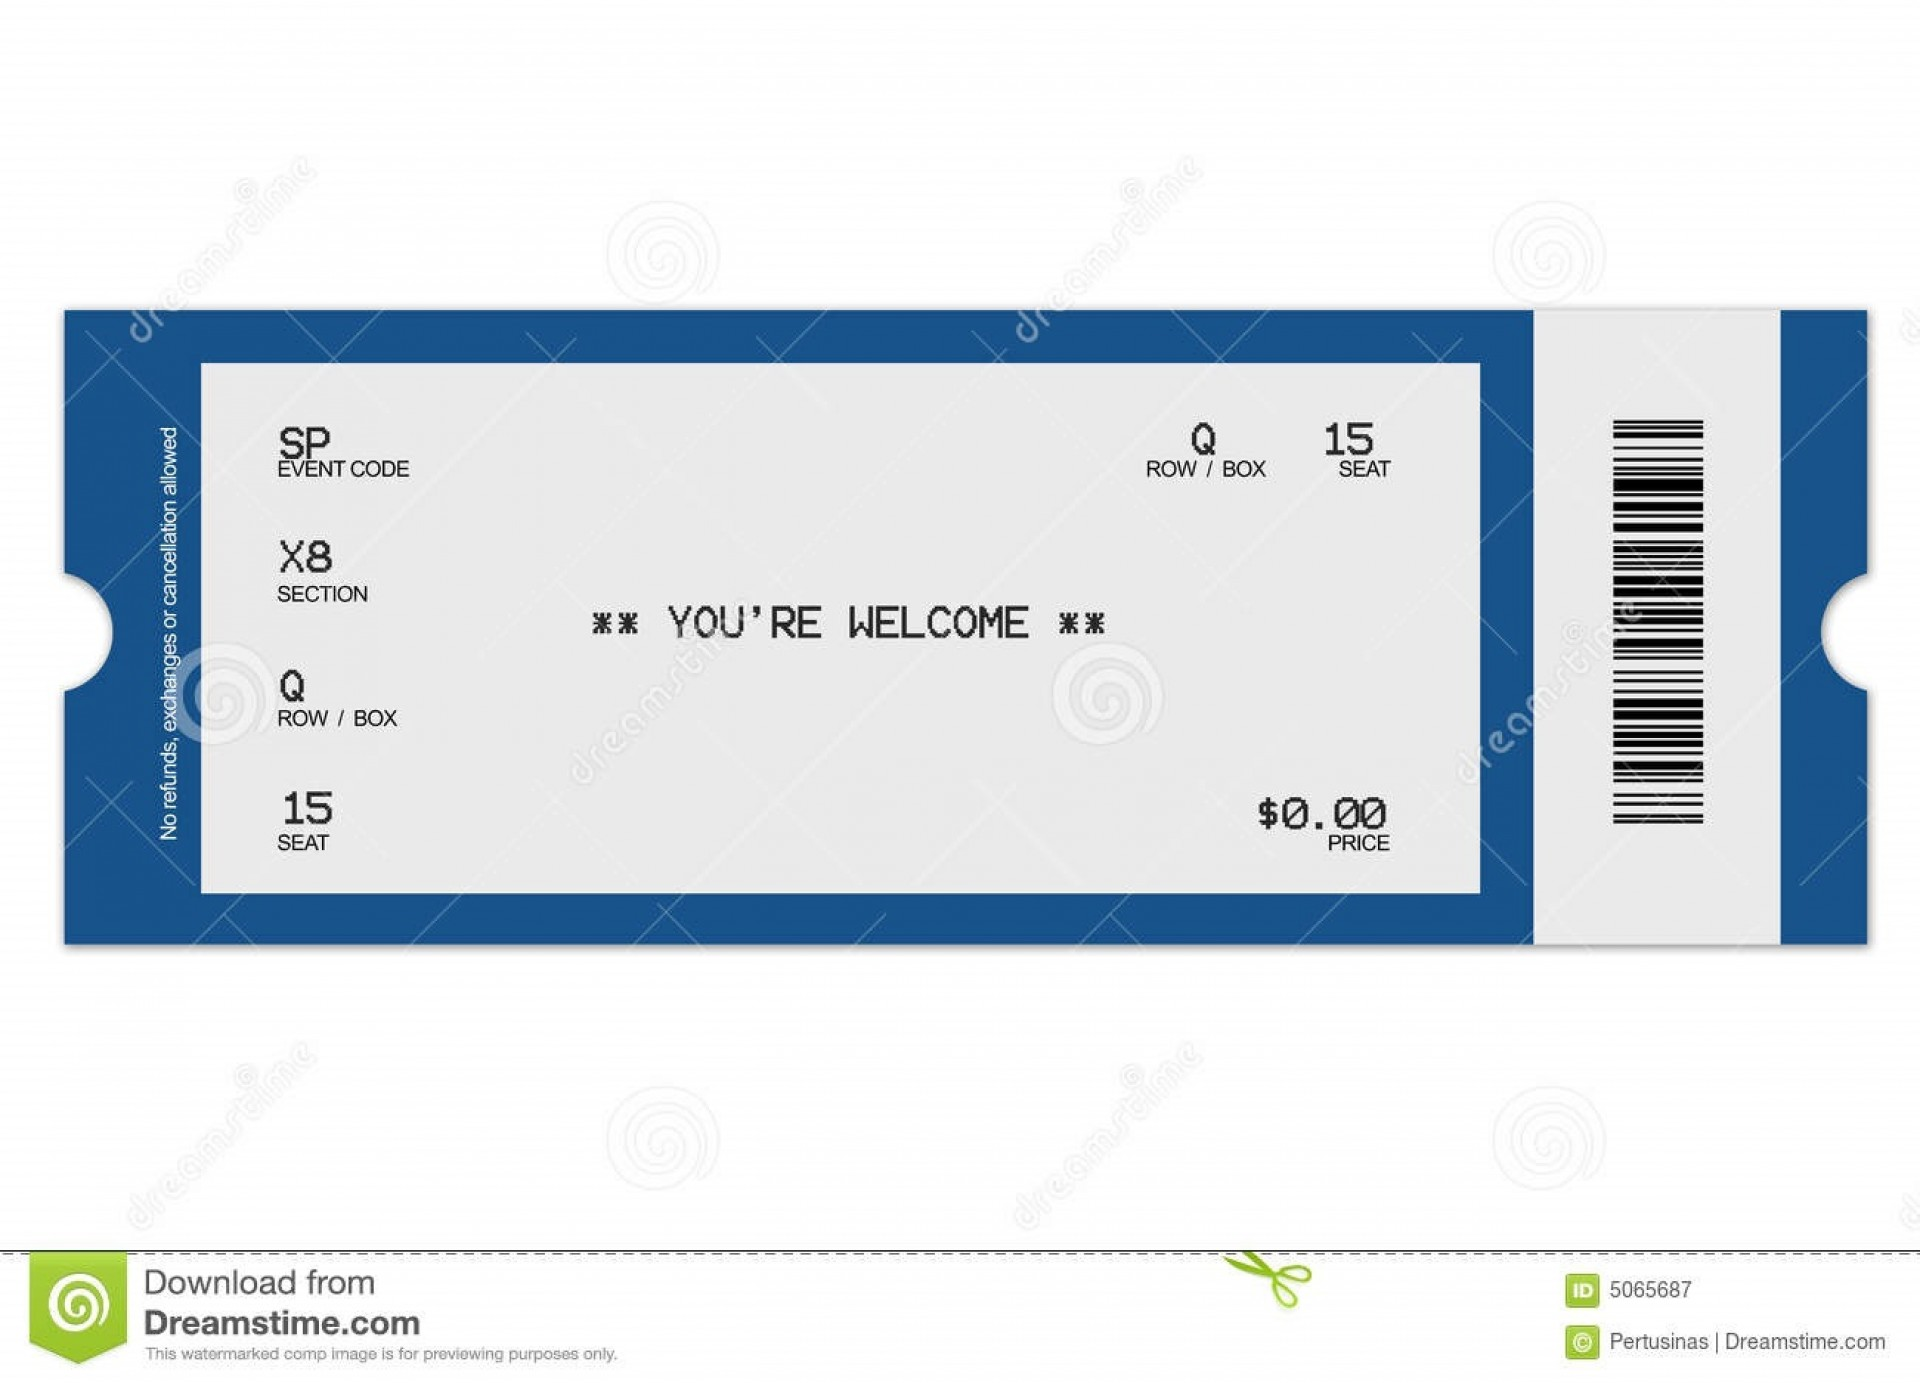 007 Fascinating Free Concert Ticket Printable Photo  Template For Gift1920